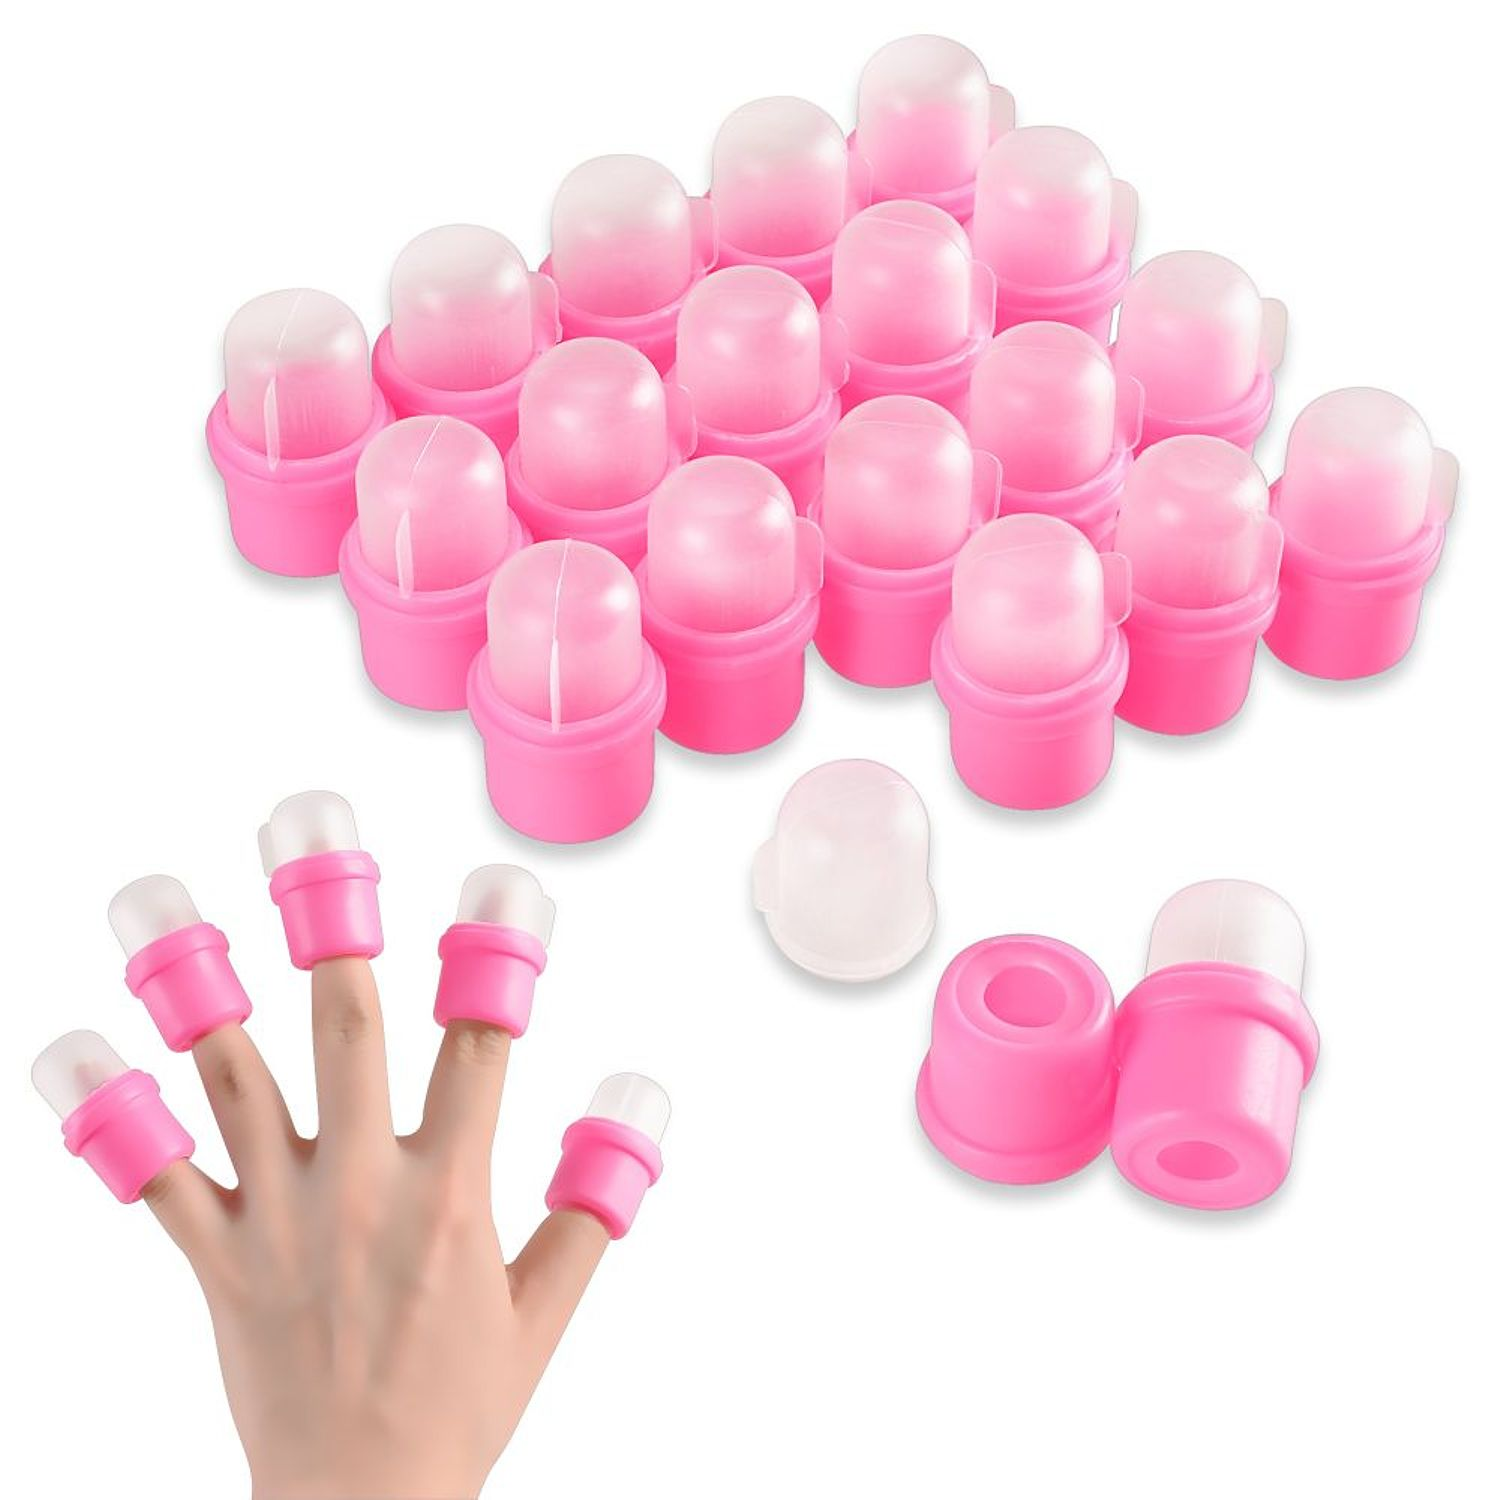 Zodaca 20 pcs Cap DIY Wearable Salon Nail Art Acrylic UV Gel Polish Remover Soak Soakers Tool For Manicure